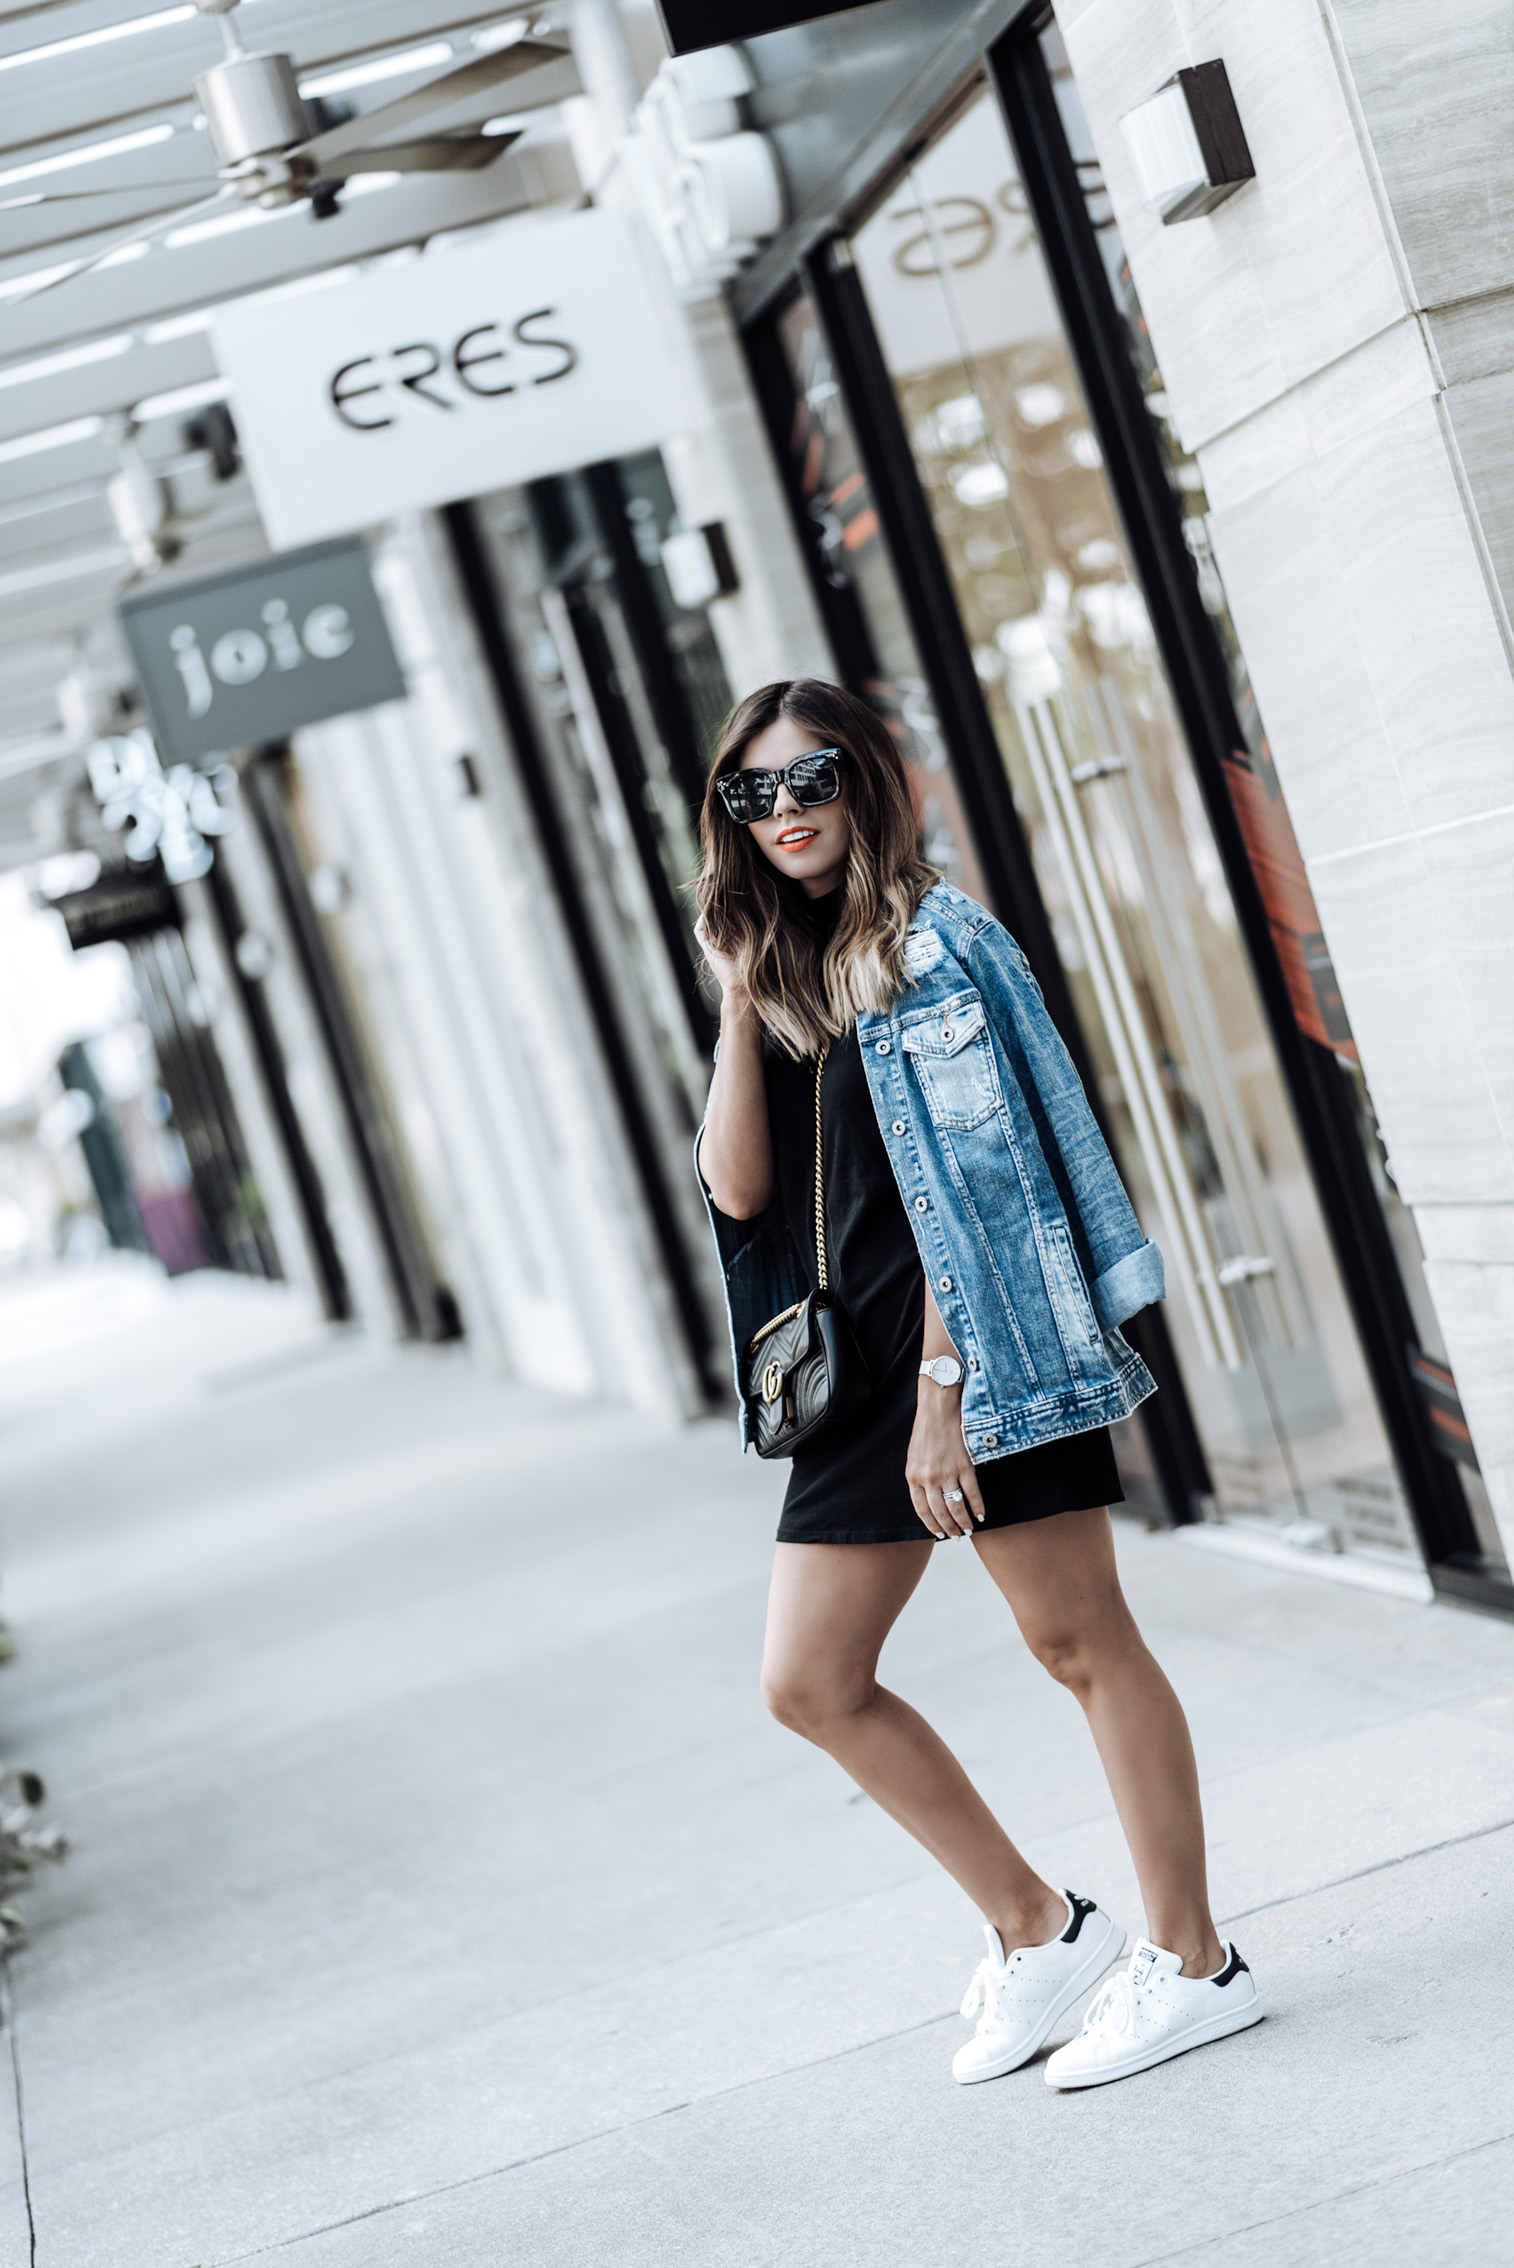 Currently trending / oversized denim jacket | sneaker outfit ideas | Arizona Oversized Denim Jacket | Mock Neck Dress | Stan Smith Sneakers | Gucci Marmot Bag | Watch | Houston fashion blogger, street style fashion 2017